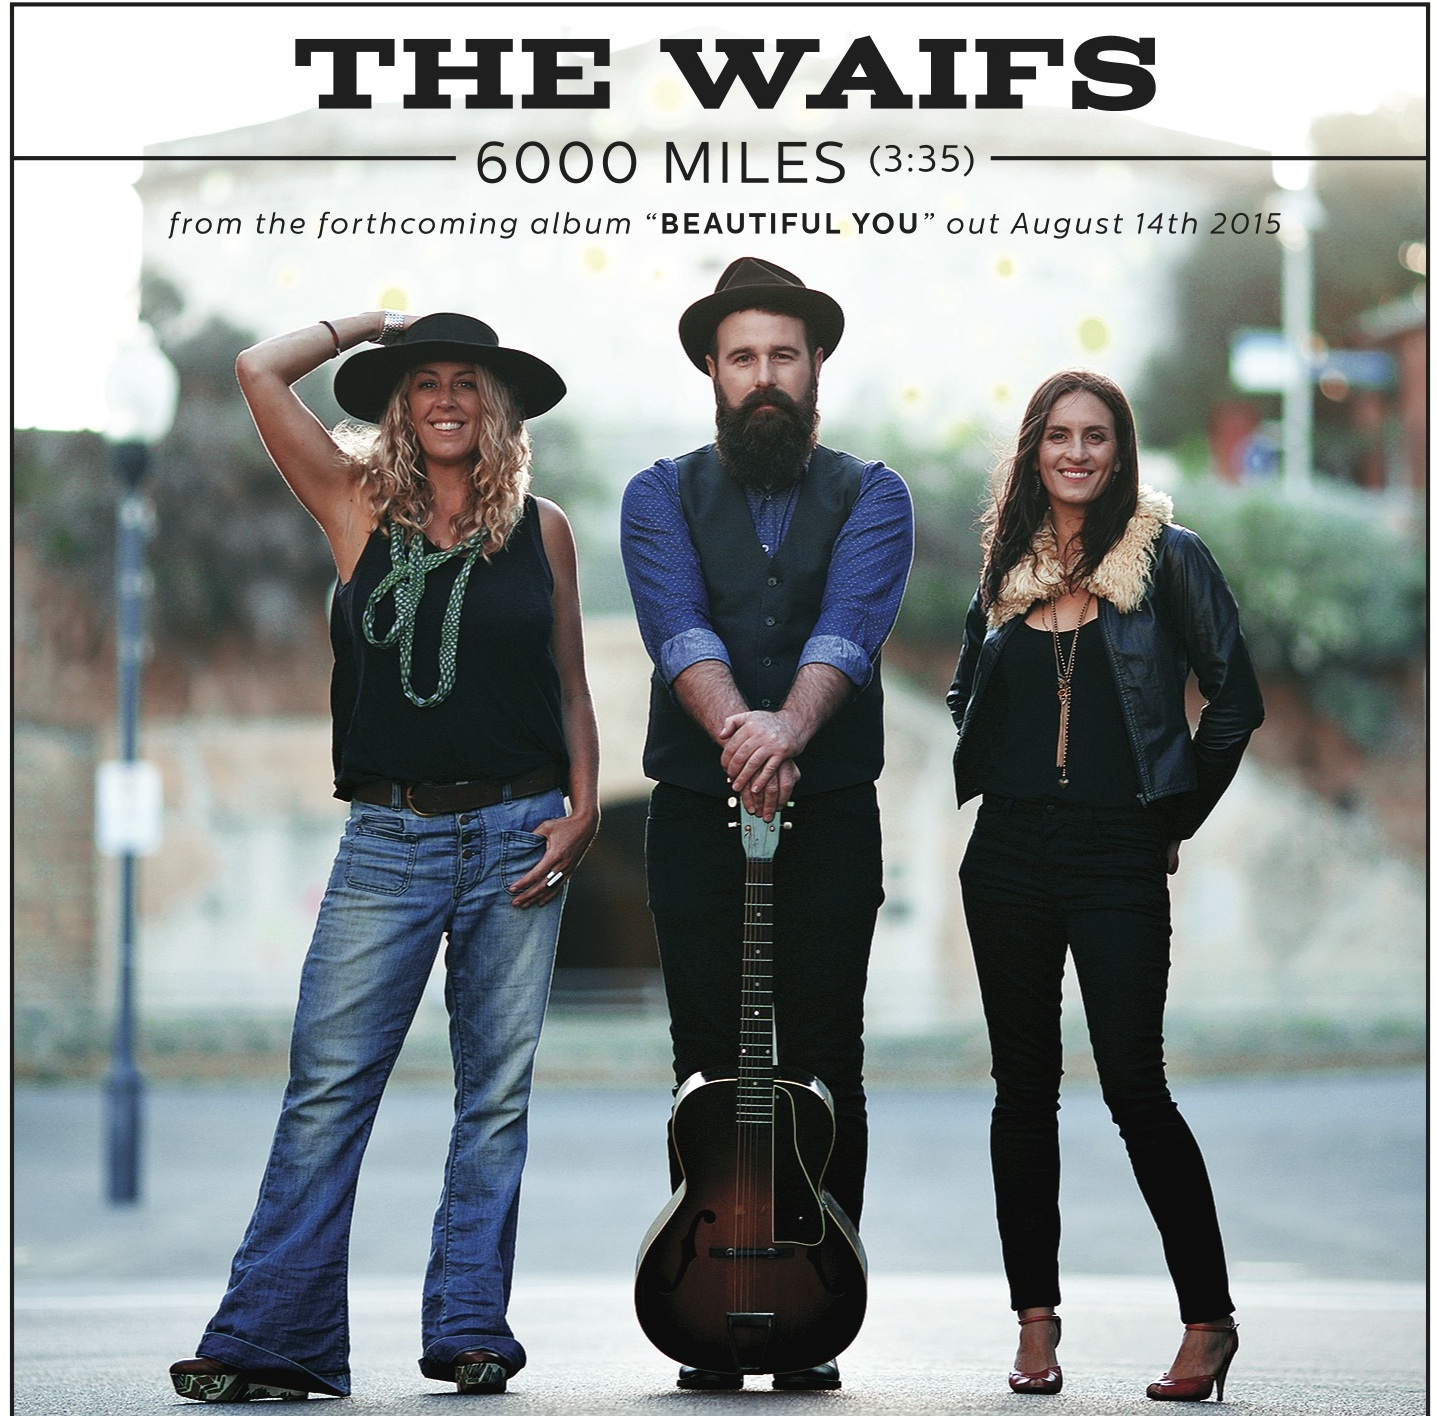 The Waifs – 6000 miles